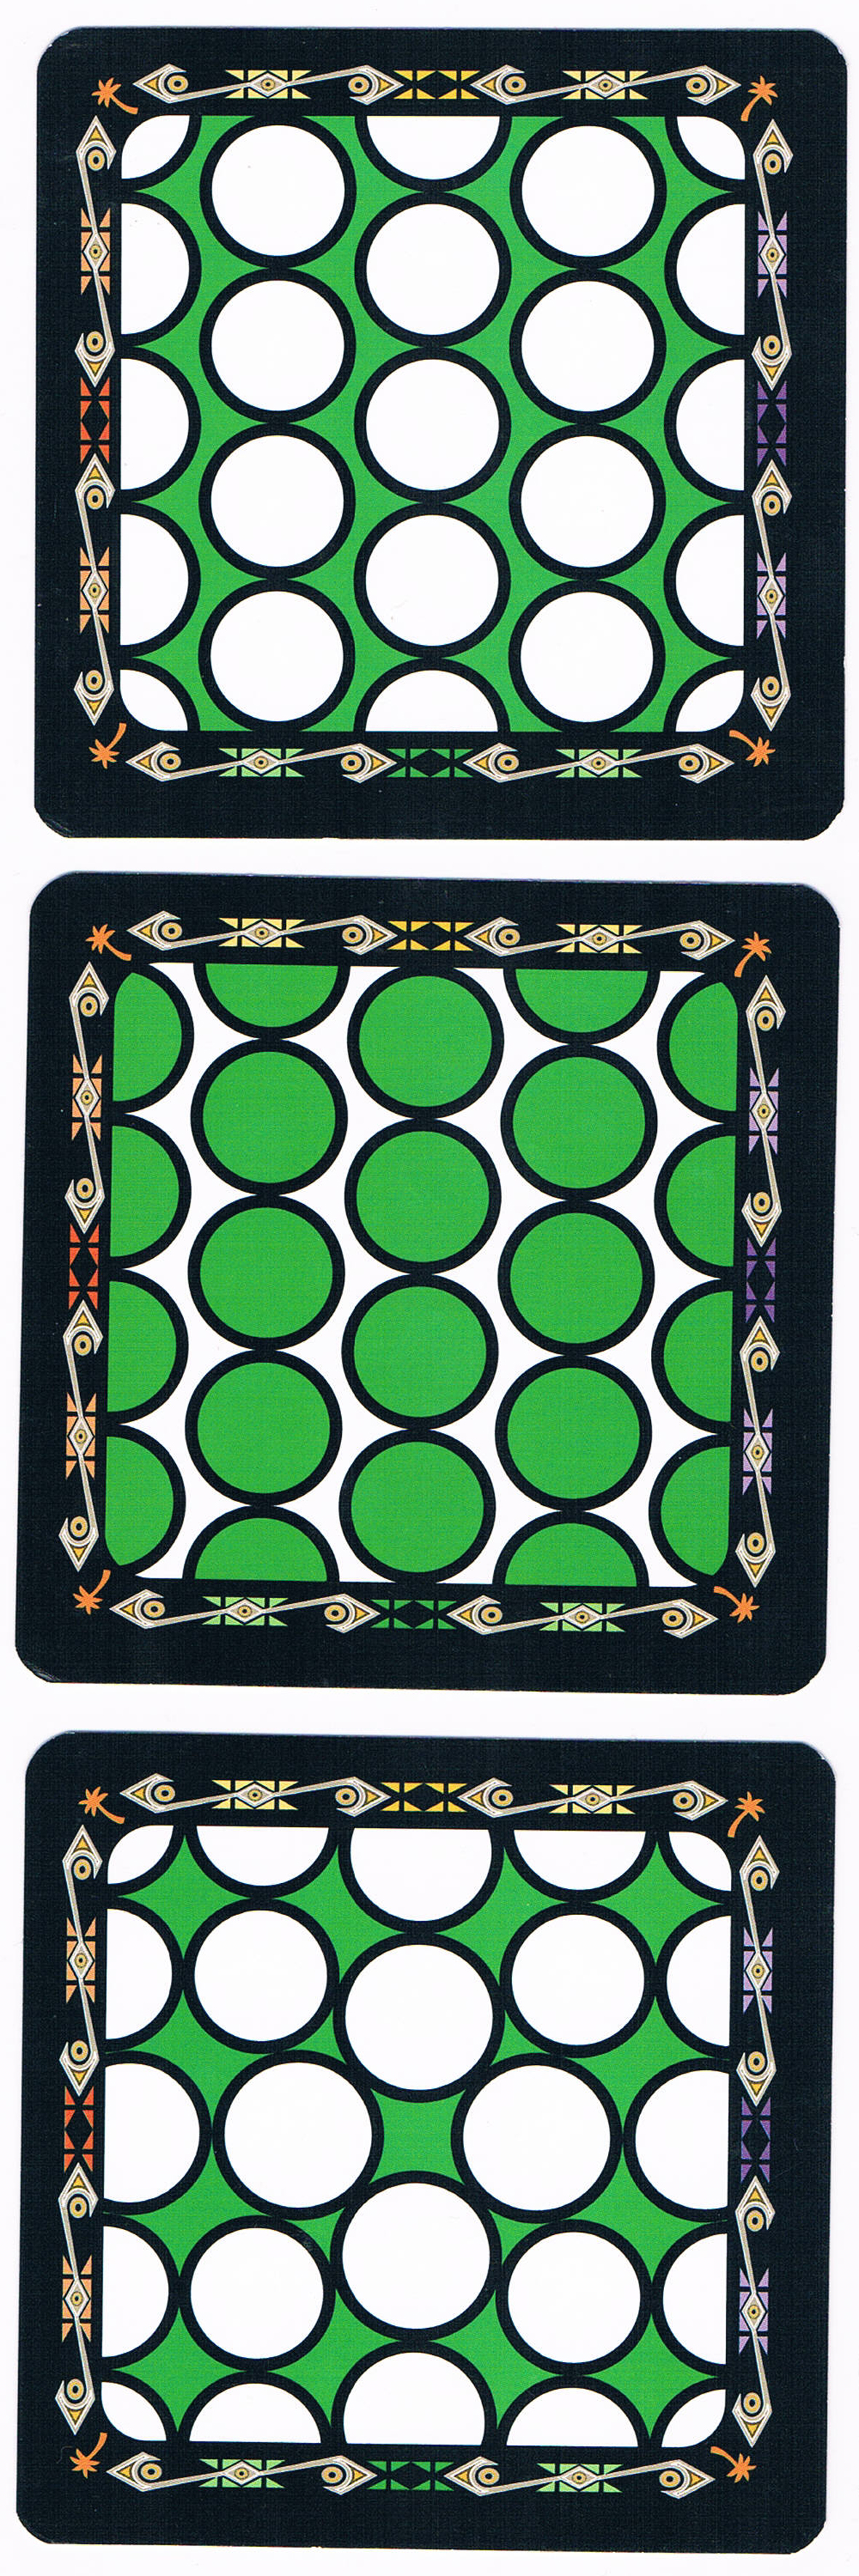 Expansi n jungle speed ultimo turno for Juego de mesa jungle speed